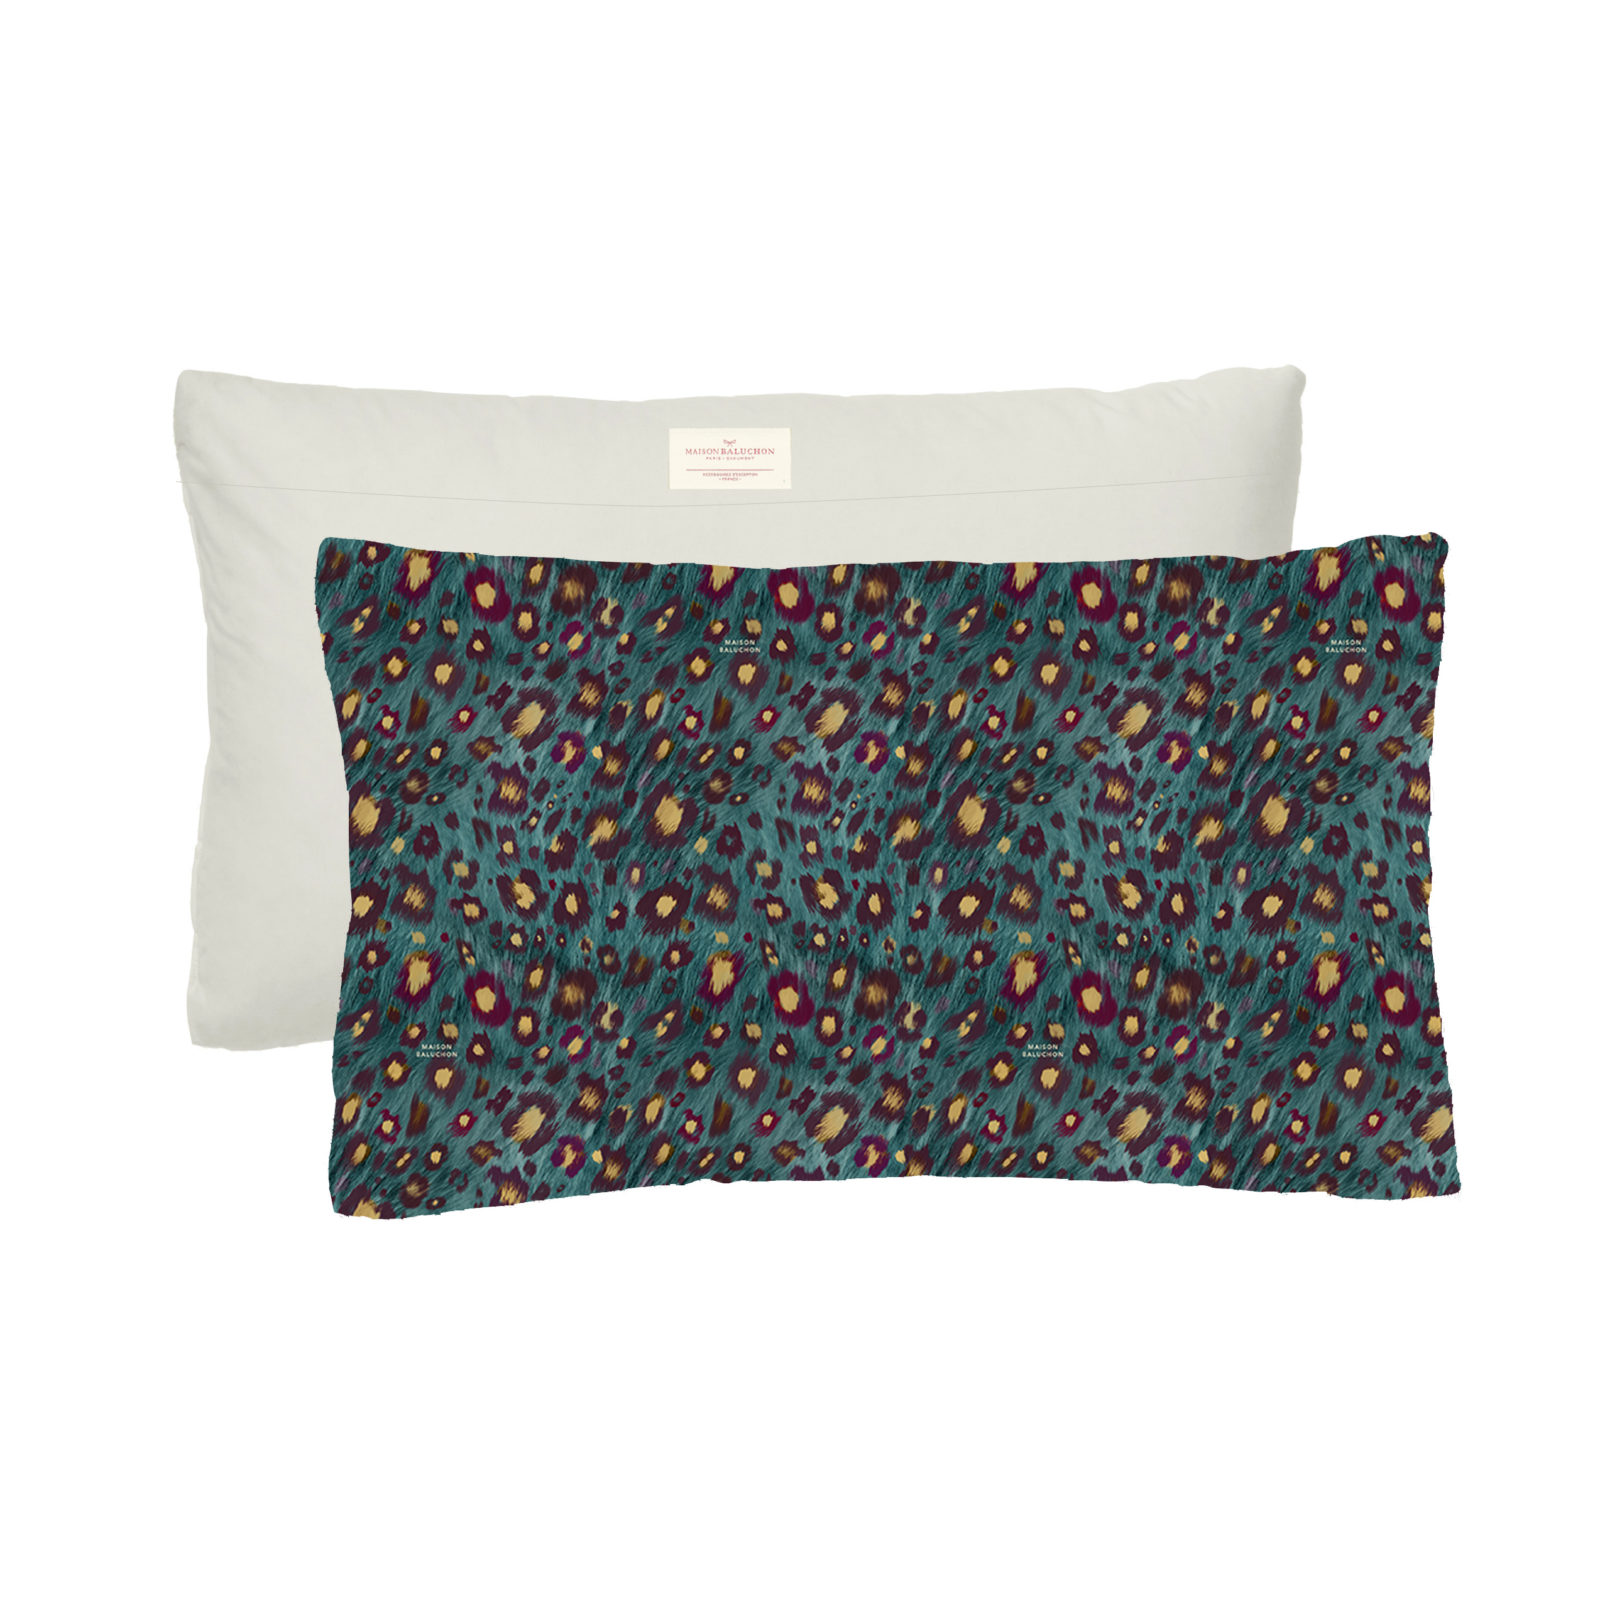 CUSHIONCOVER5030-sauvage21